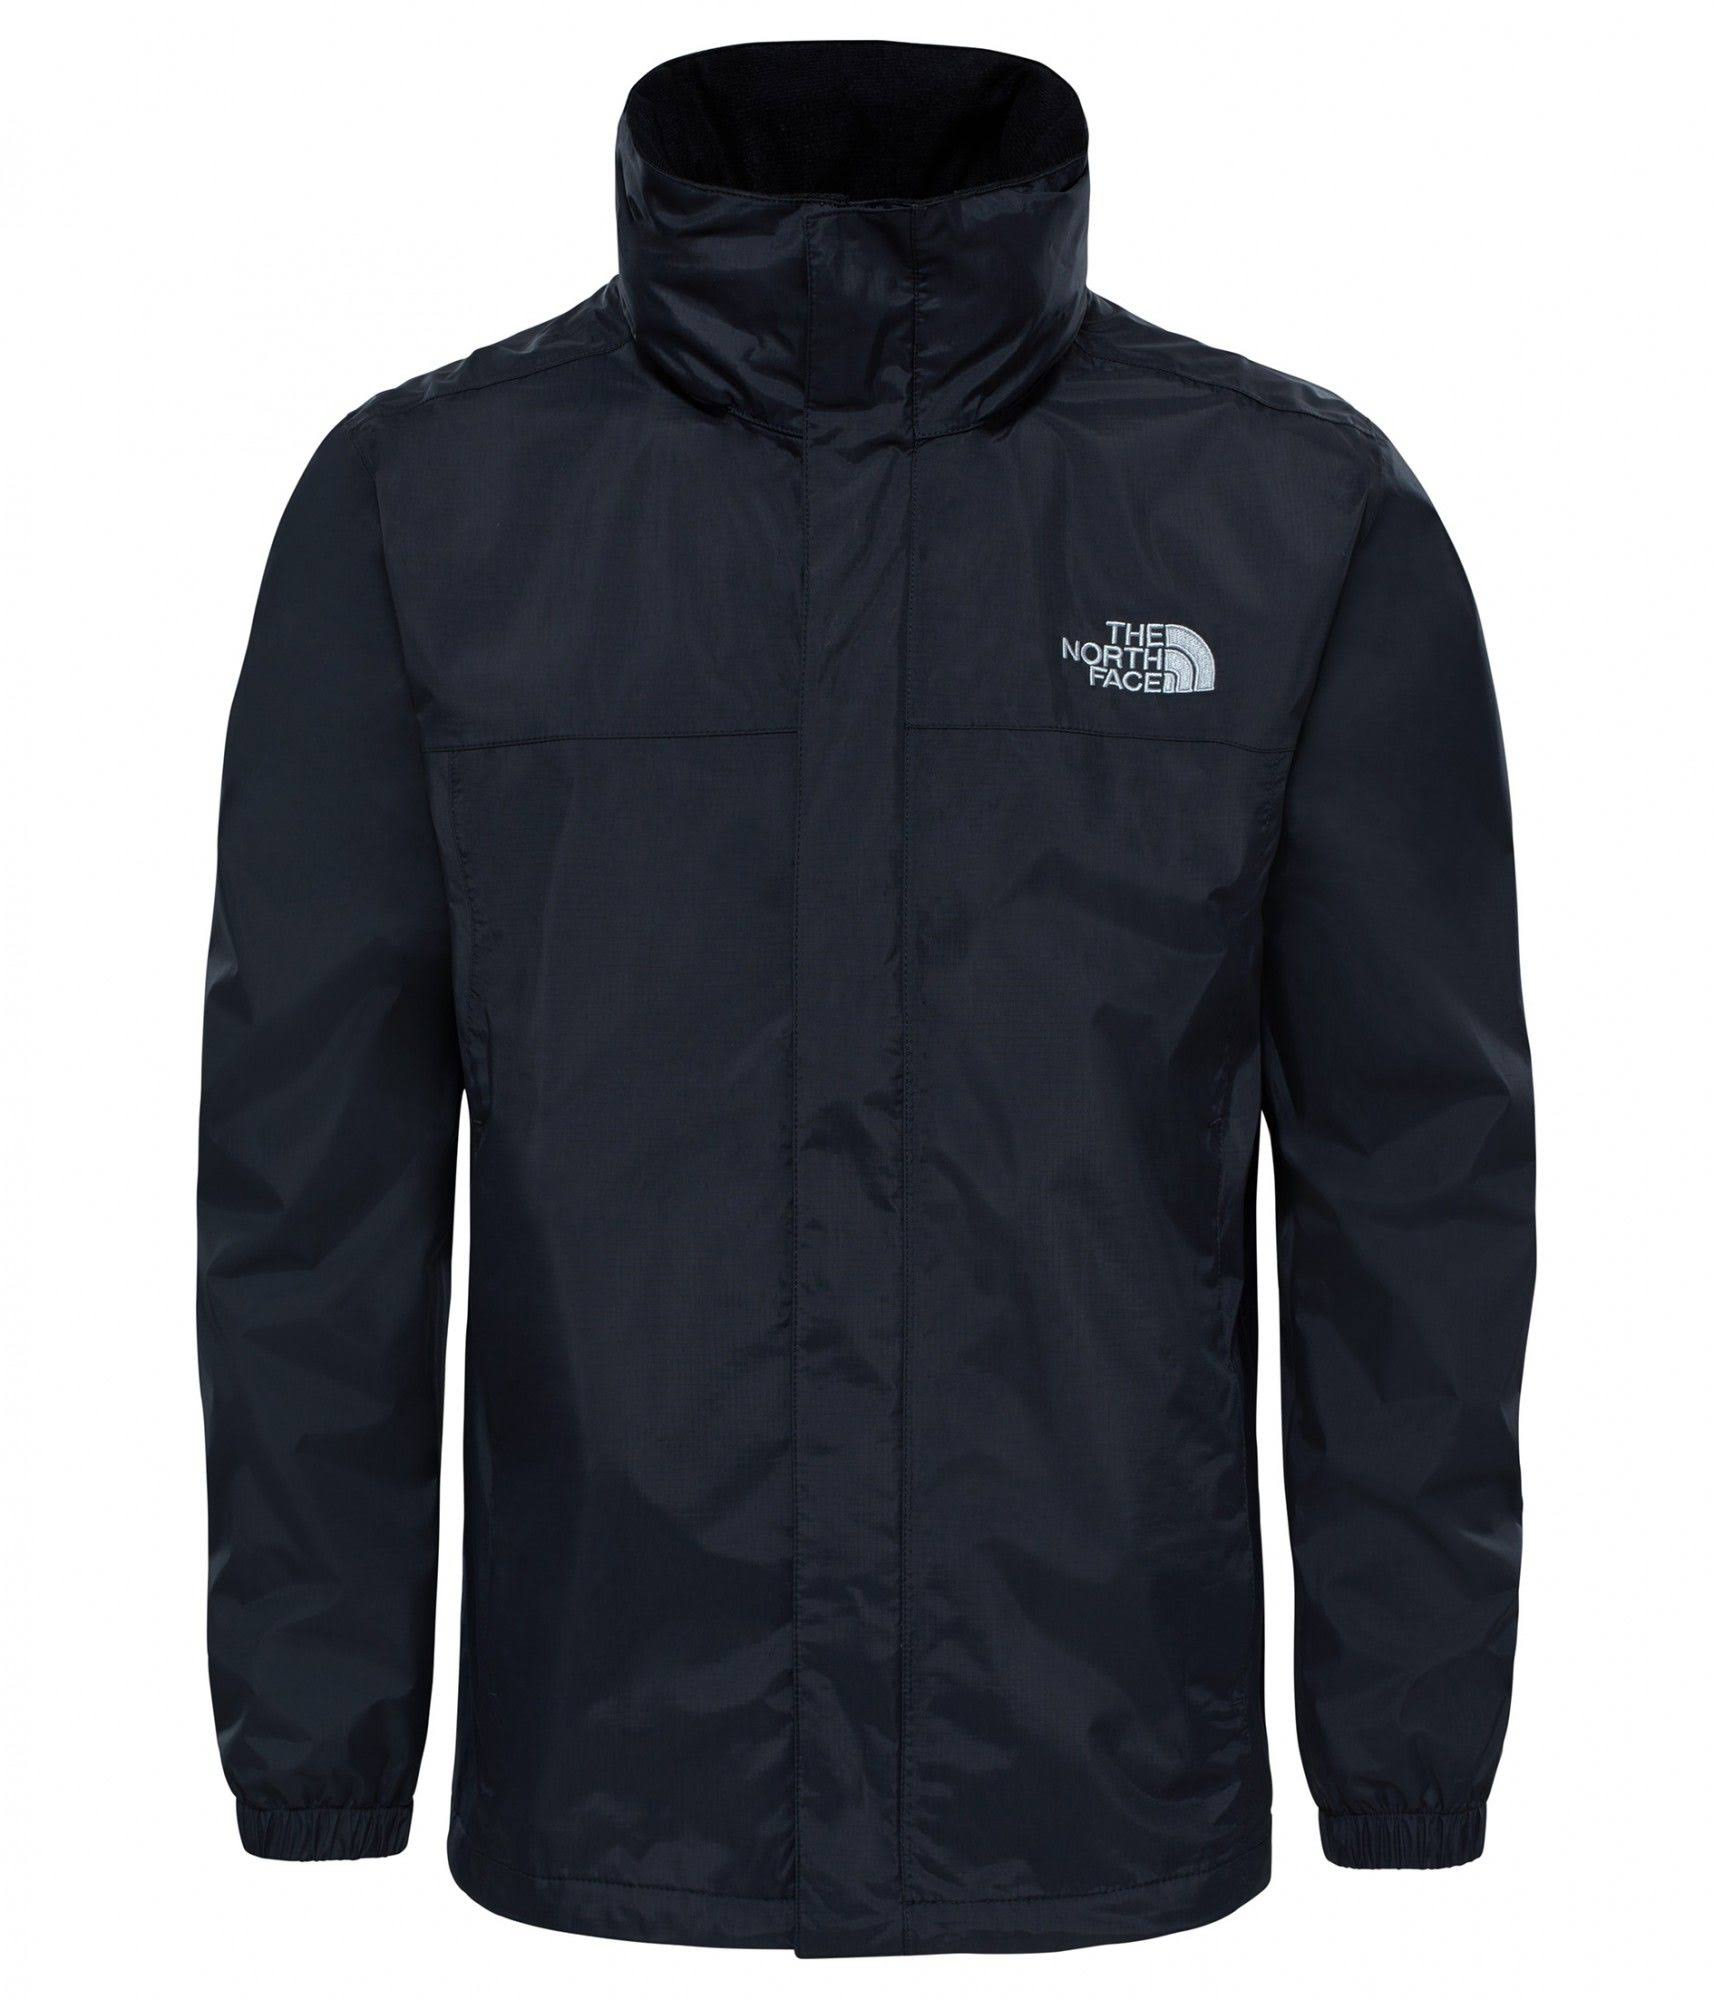 Resolve 2 Black Tnf Jacket The Face L North xRgw6E